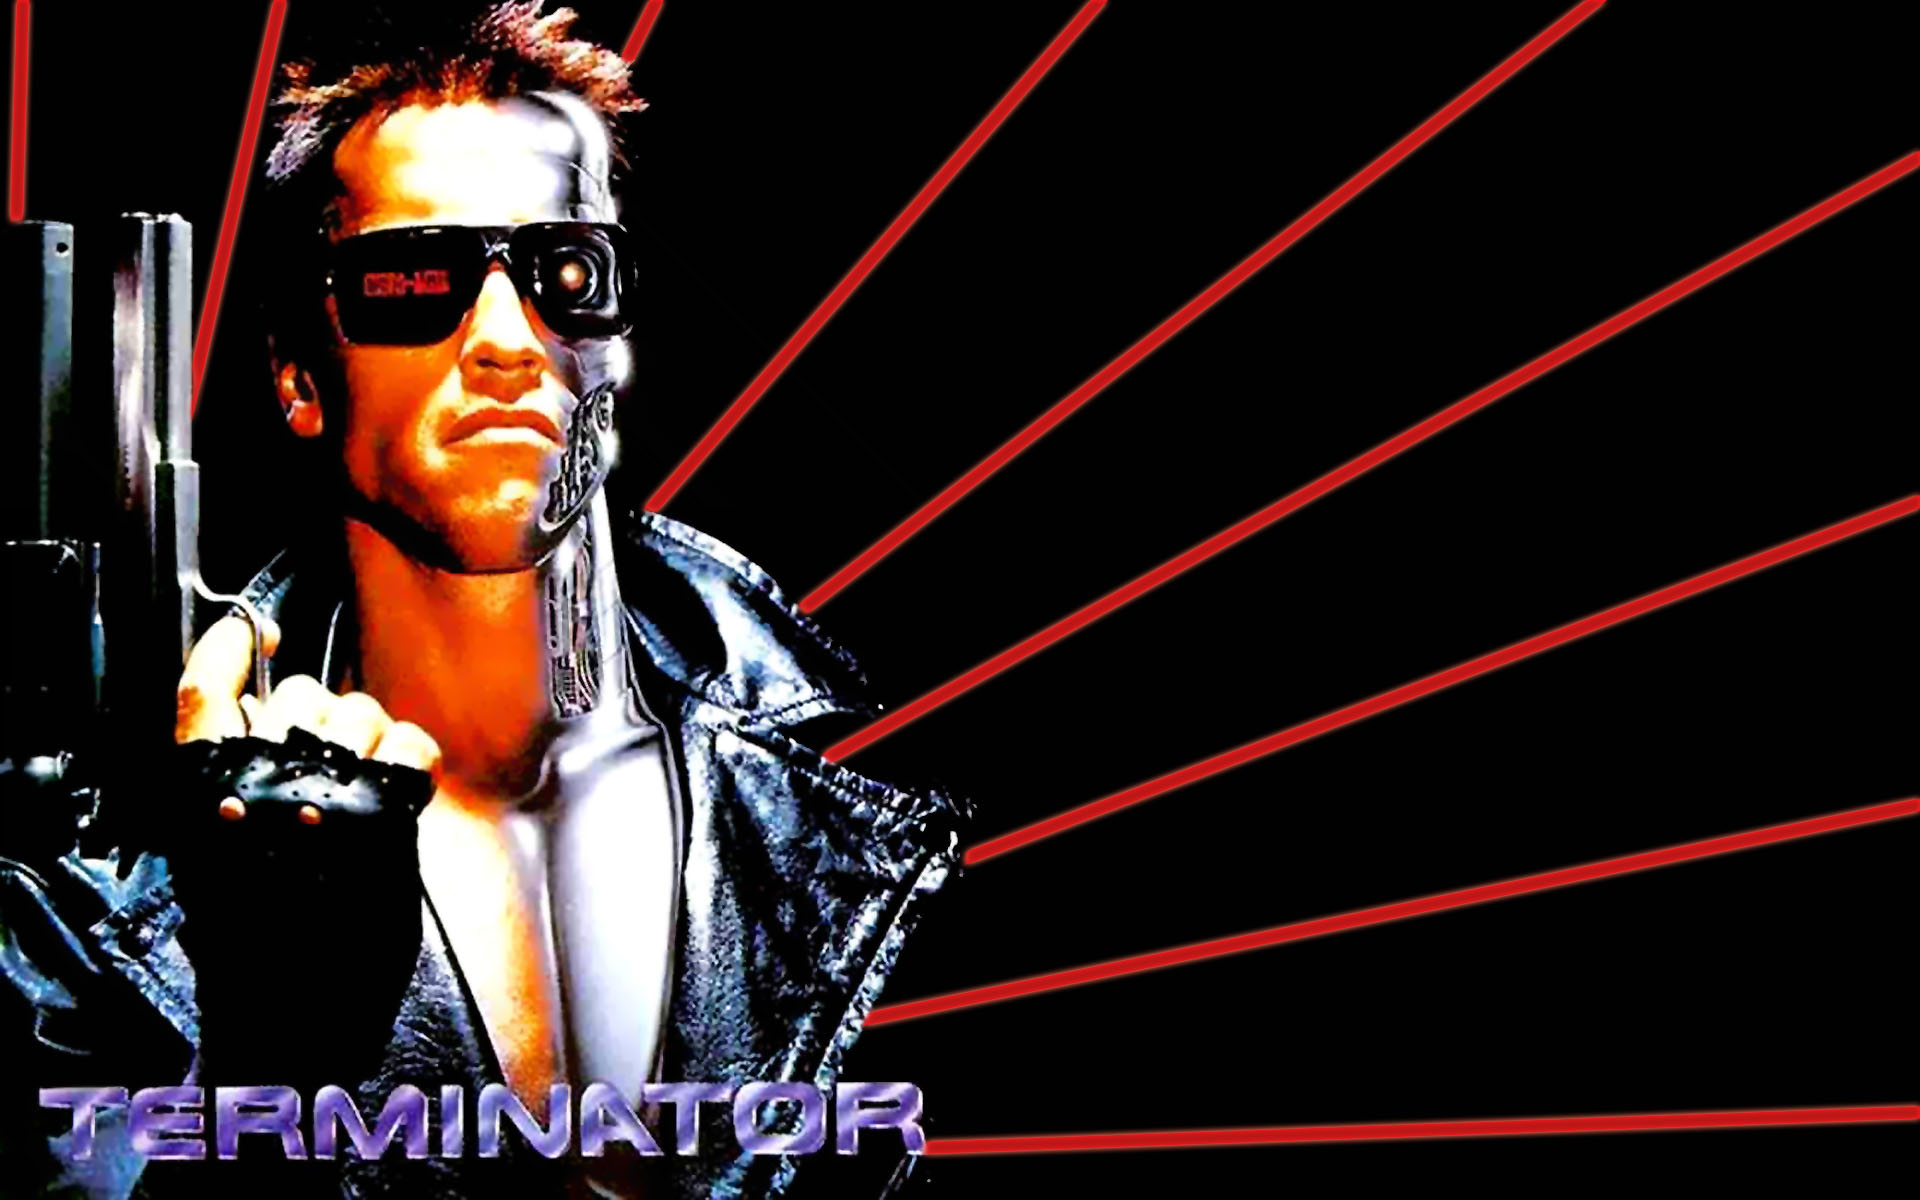 Free Download Terminator Wallpaper Sf Wallpaper 1920x1200